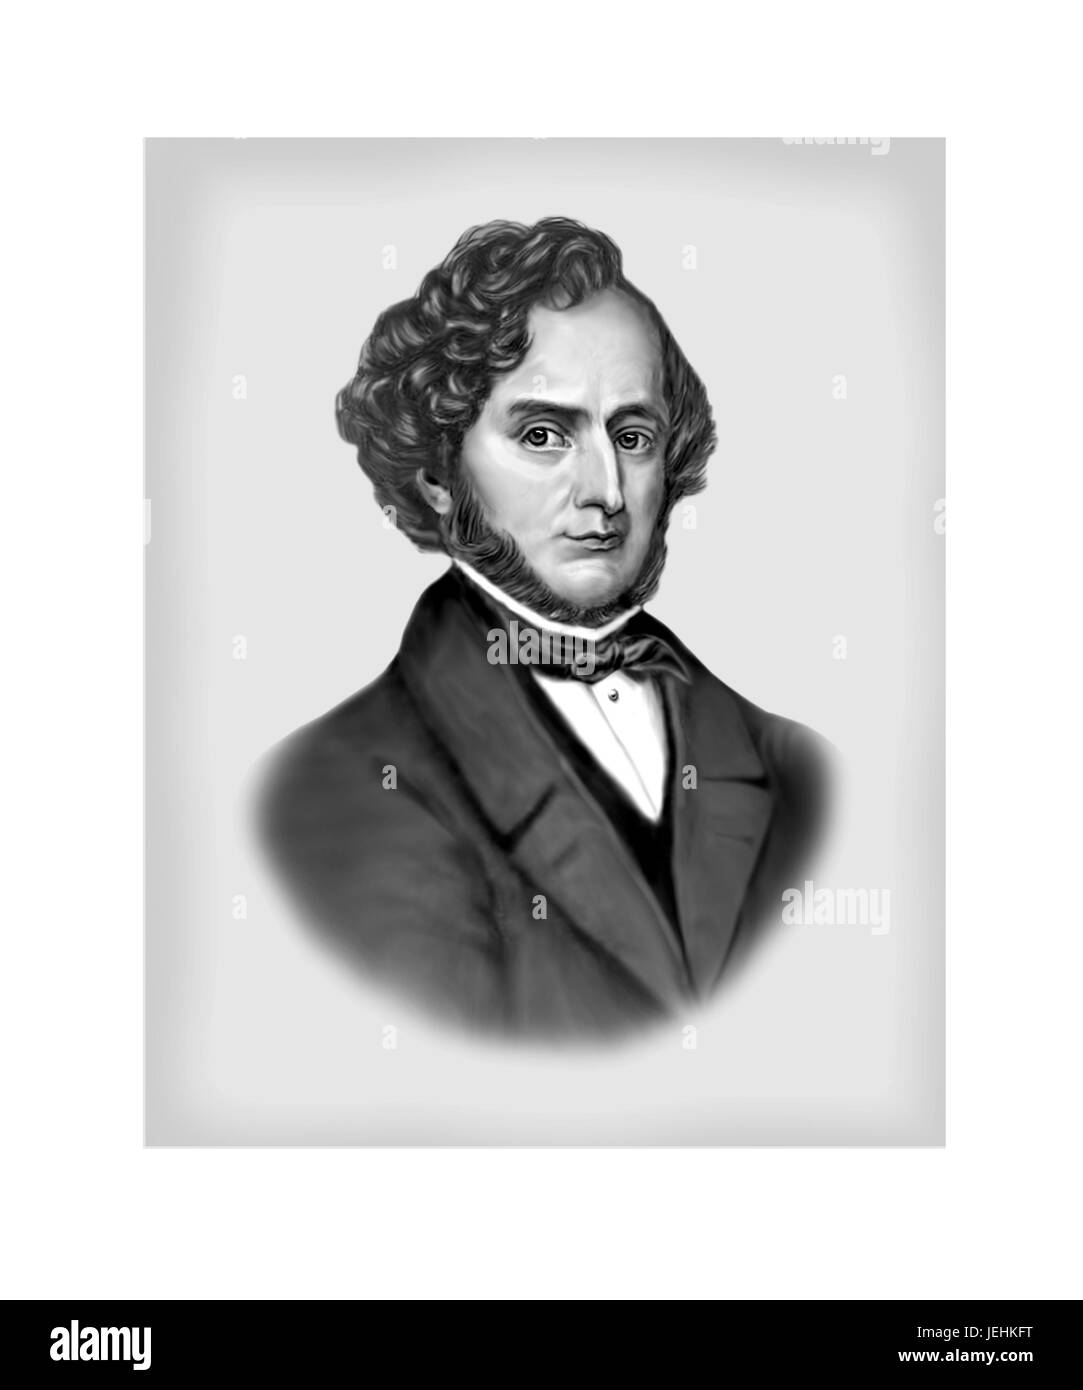 Hector Louis Berlioz, 1803 - 1869, French Composer - Stock Image